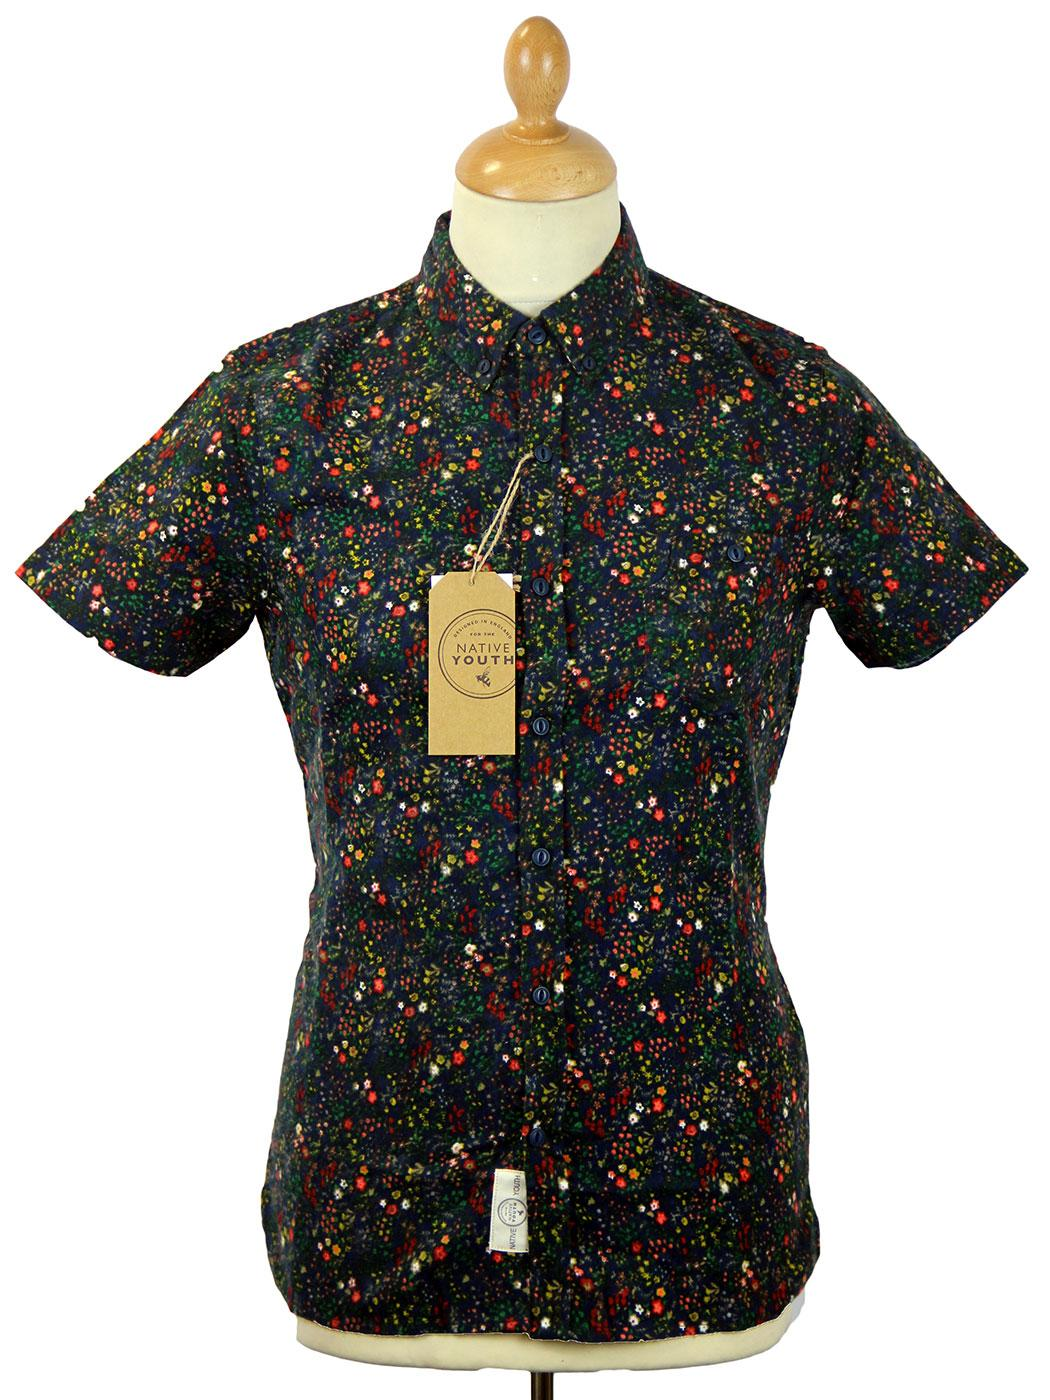 NATIVE YOUTH Retro 60s Ditsy Floral S/S Shirt